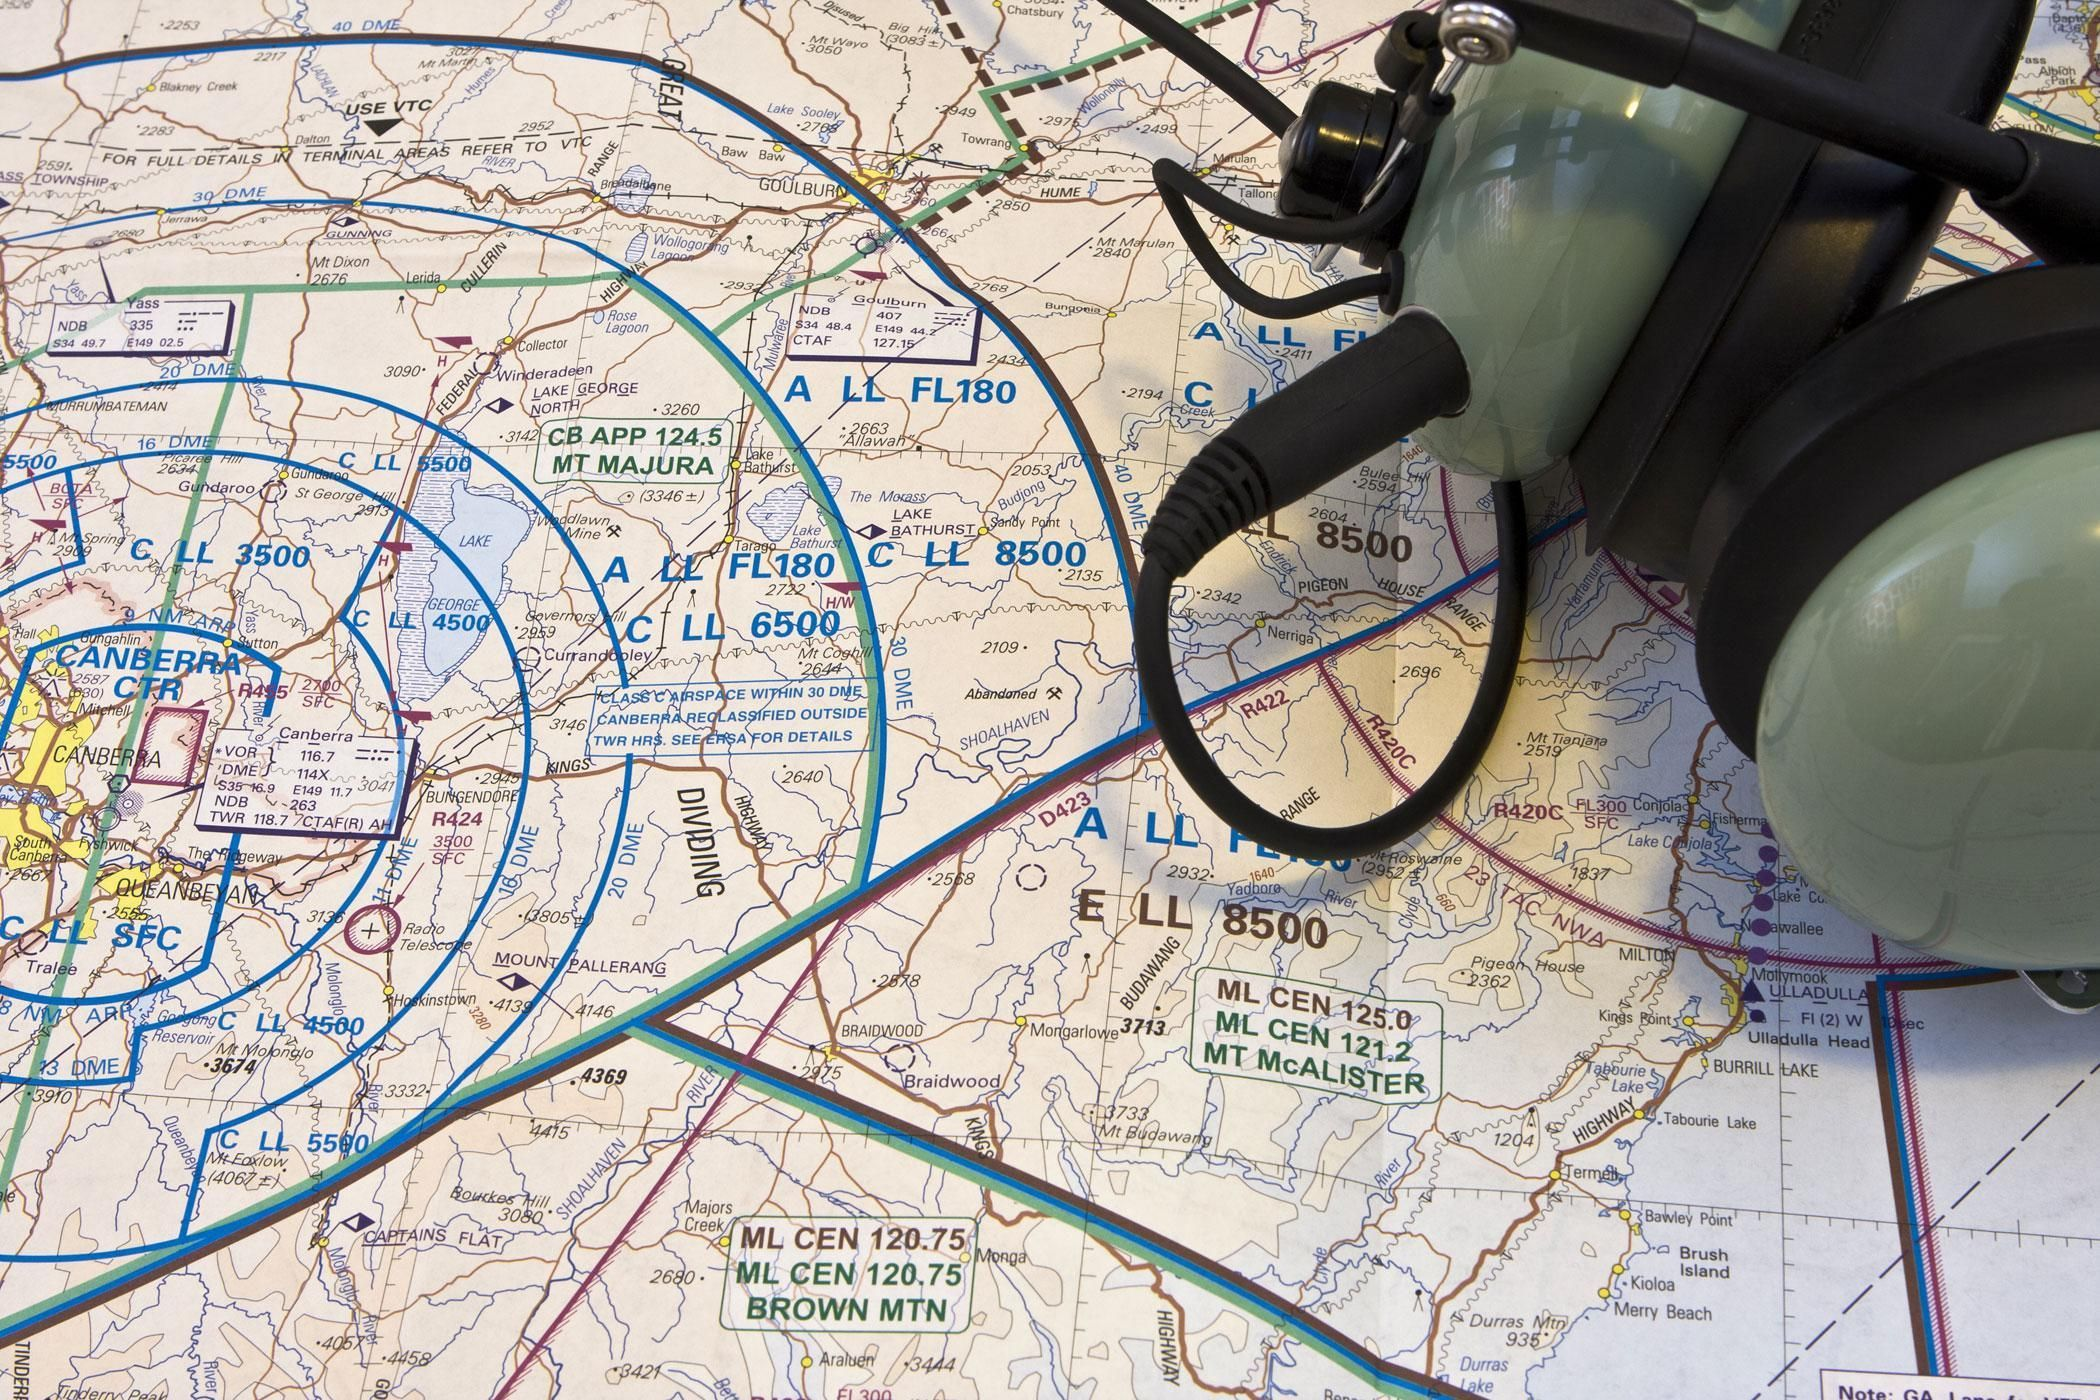 Cross-country flight planning can seem like a daunting task. Here's a step-by-step process from choosing a route to weather tracking and flight plans.